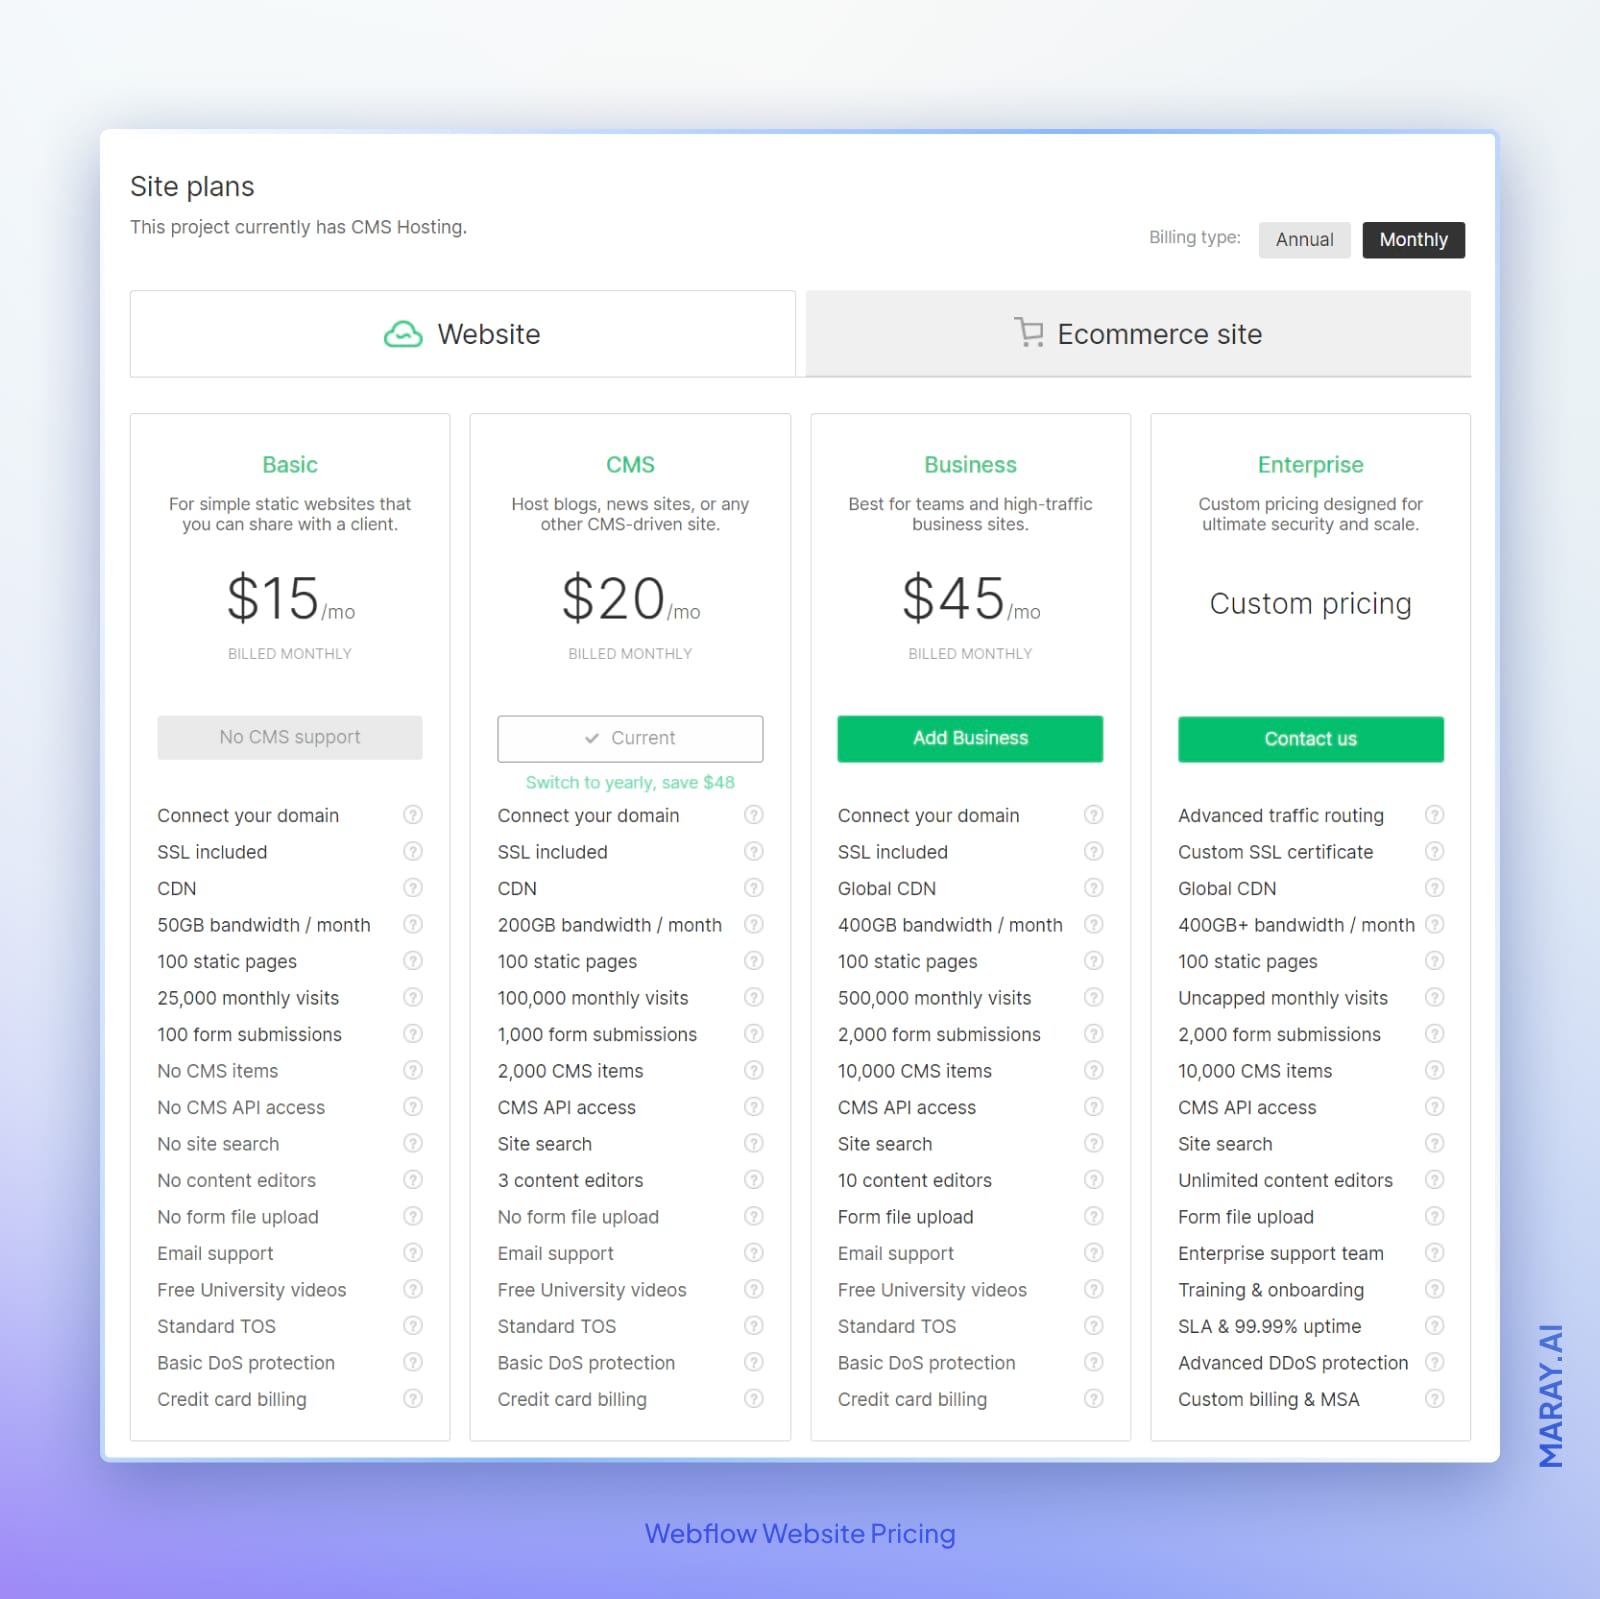 Webflow's pricing for standard site plans.